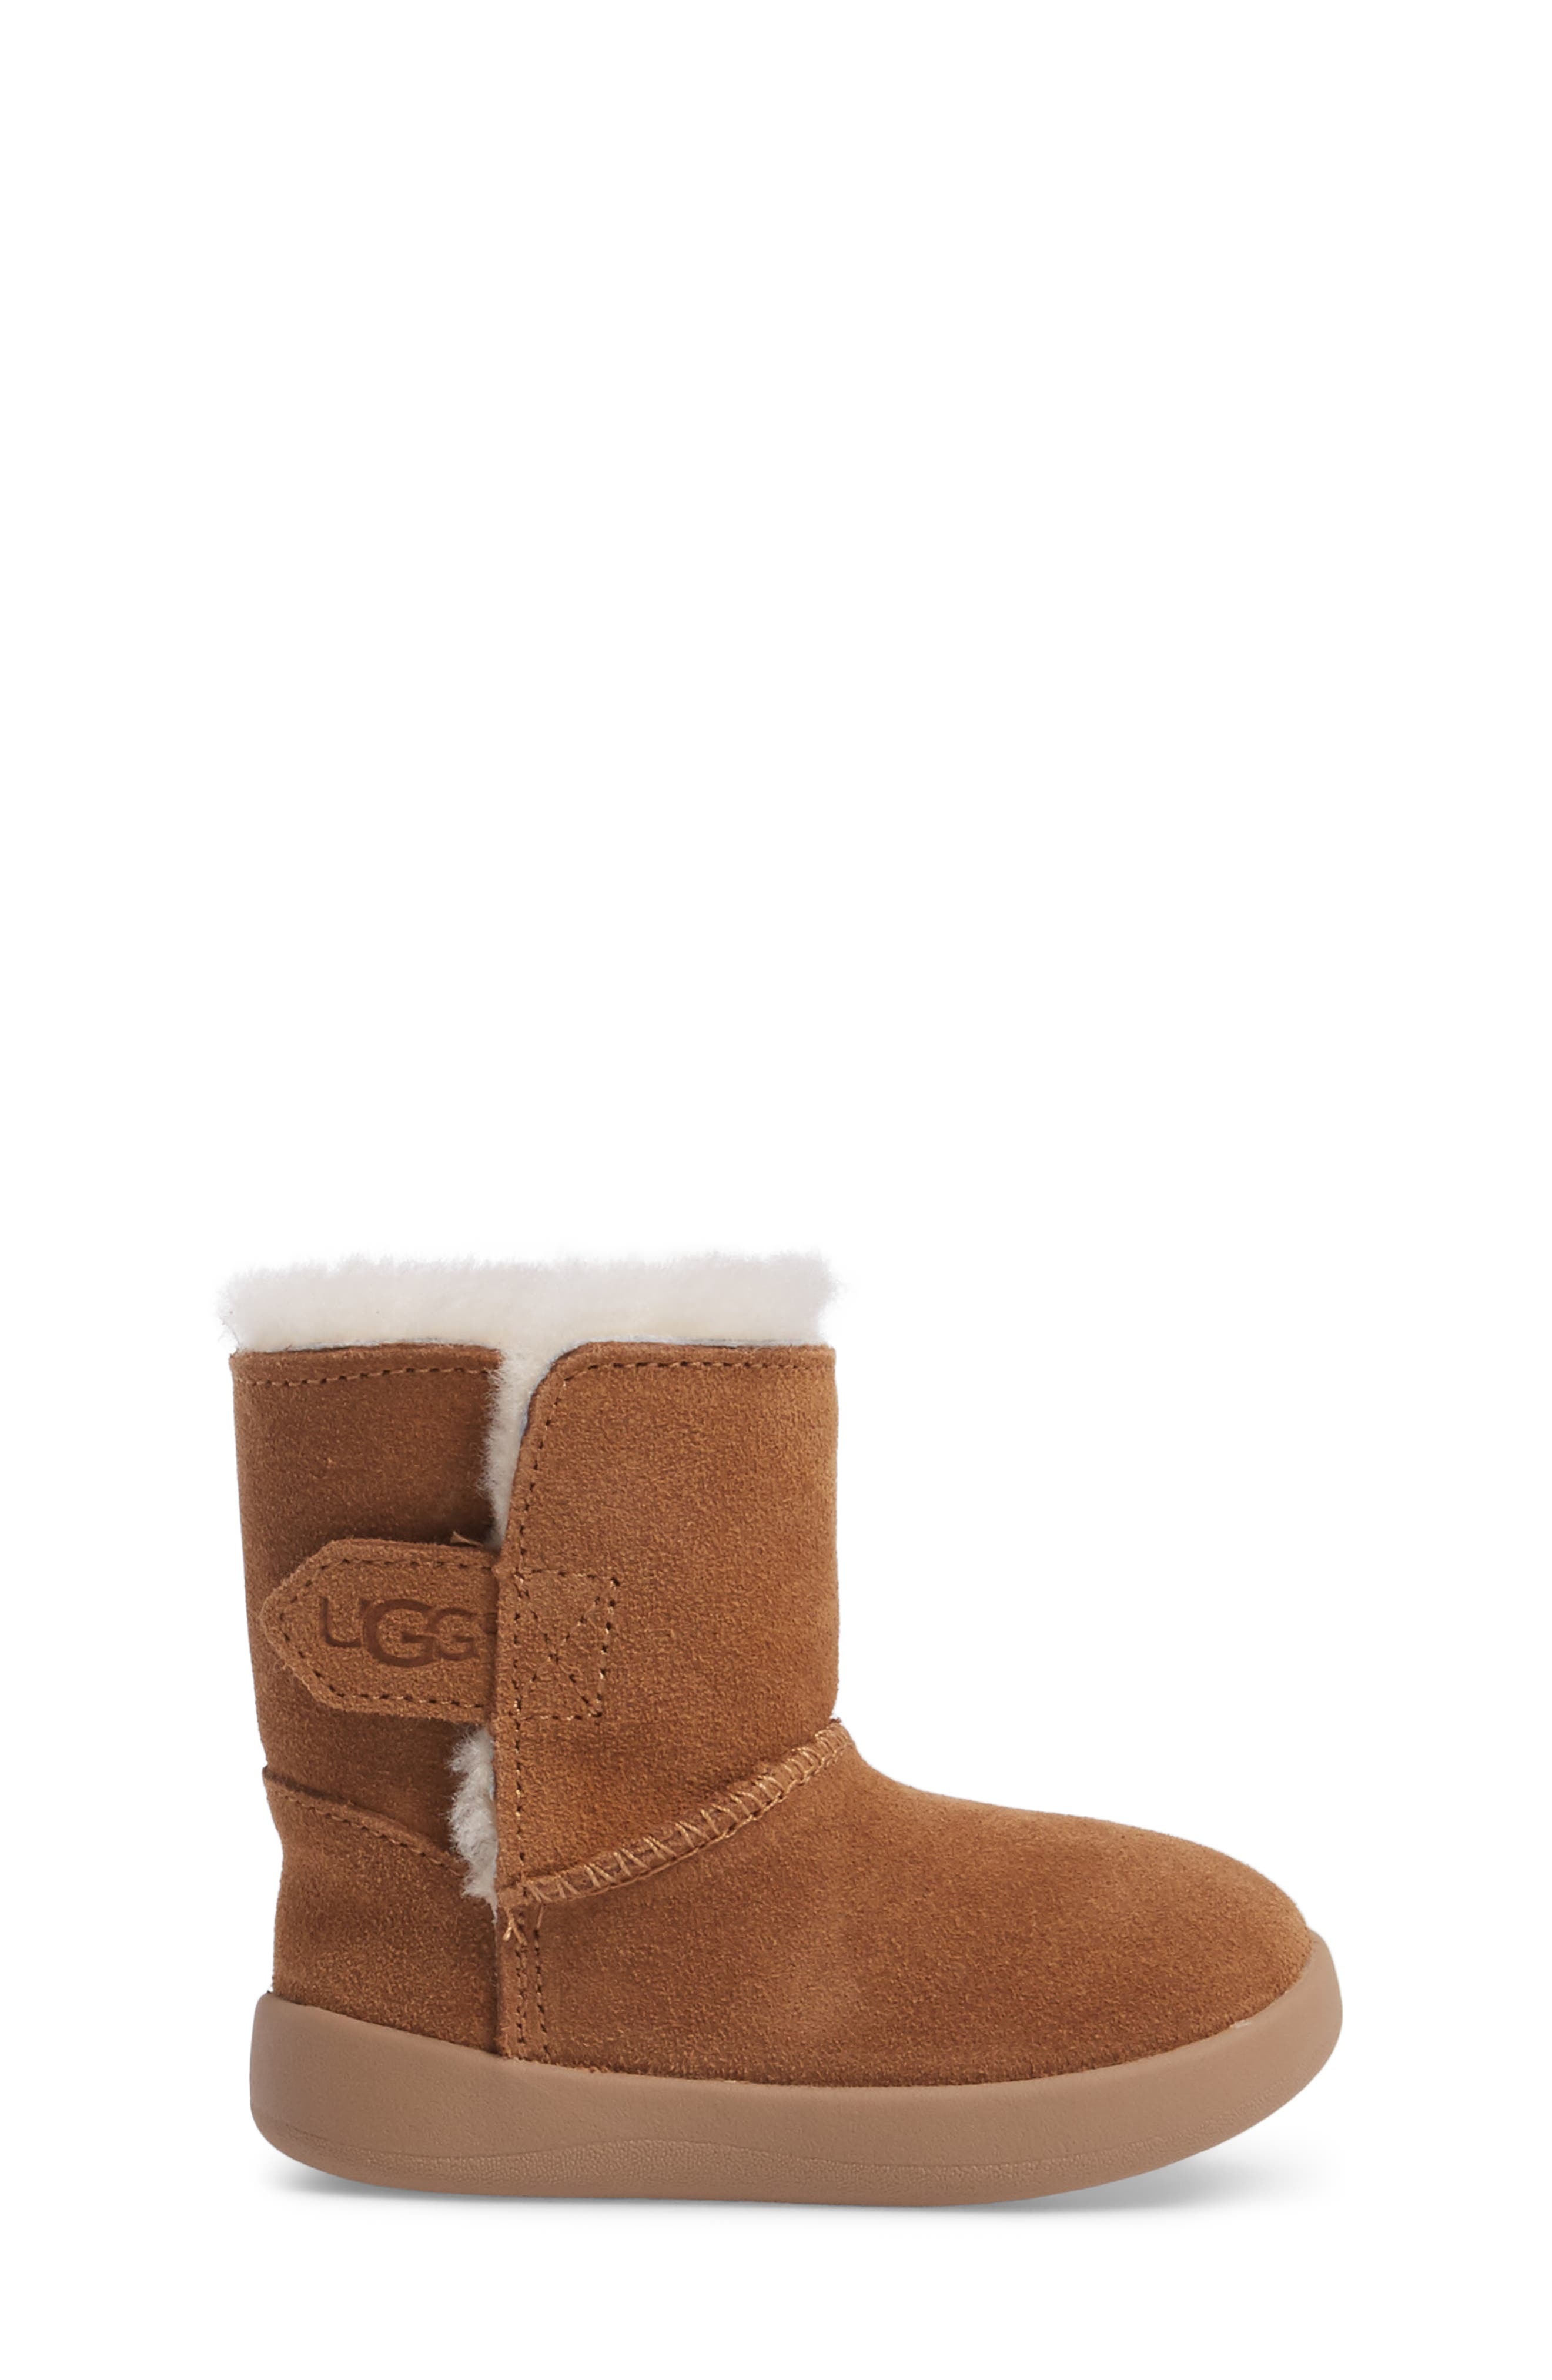 Keelan Genuine Shearling Baby Bootie,                             Alternate thumbnail 3, color,                             Chestnut Brown